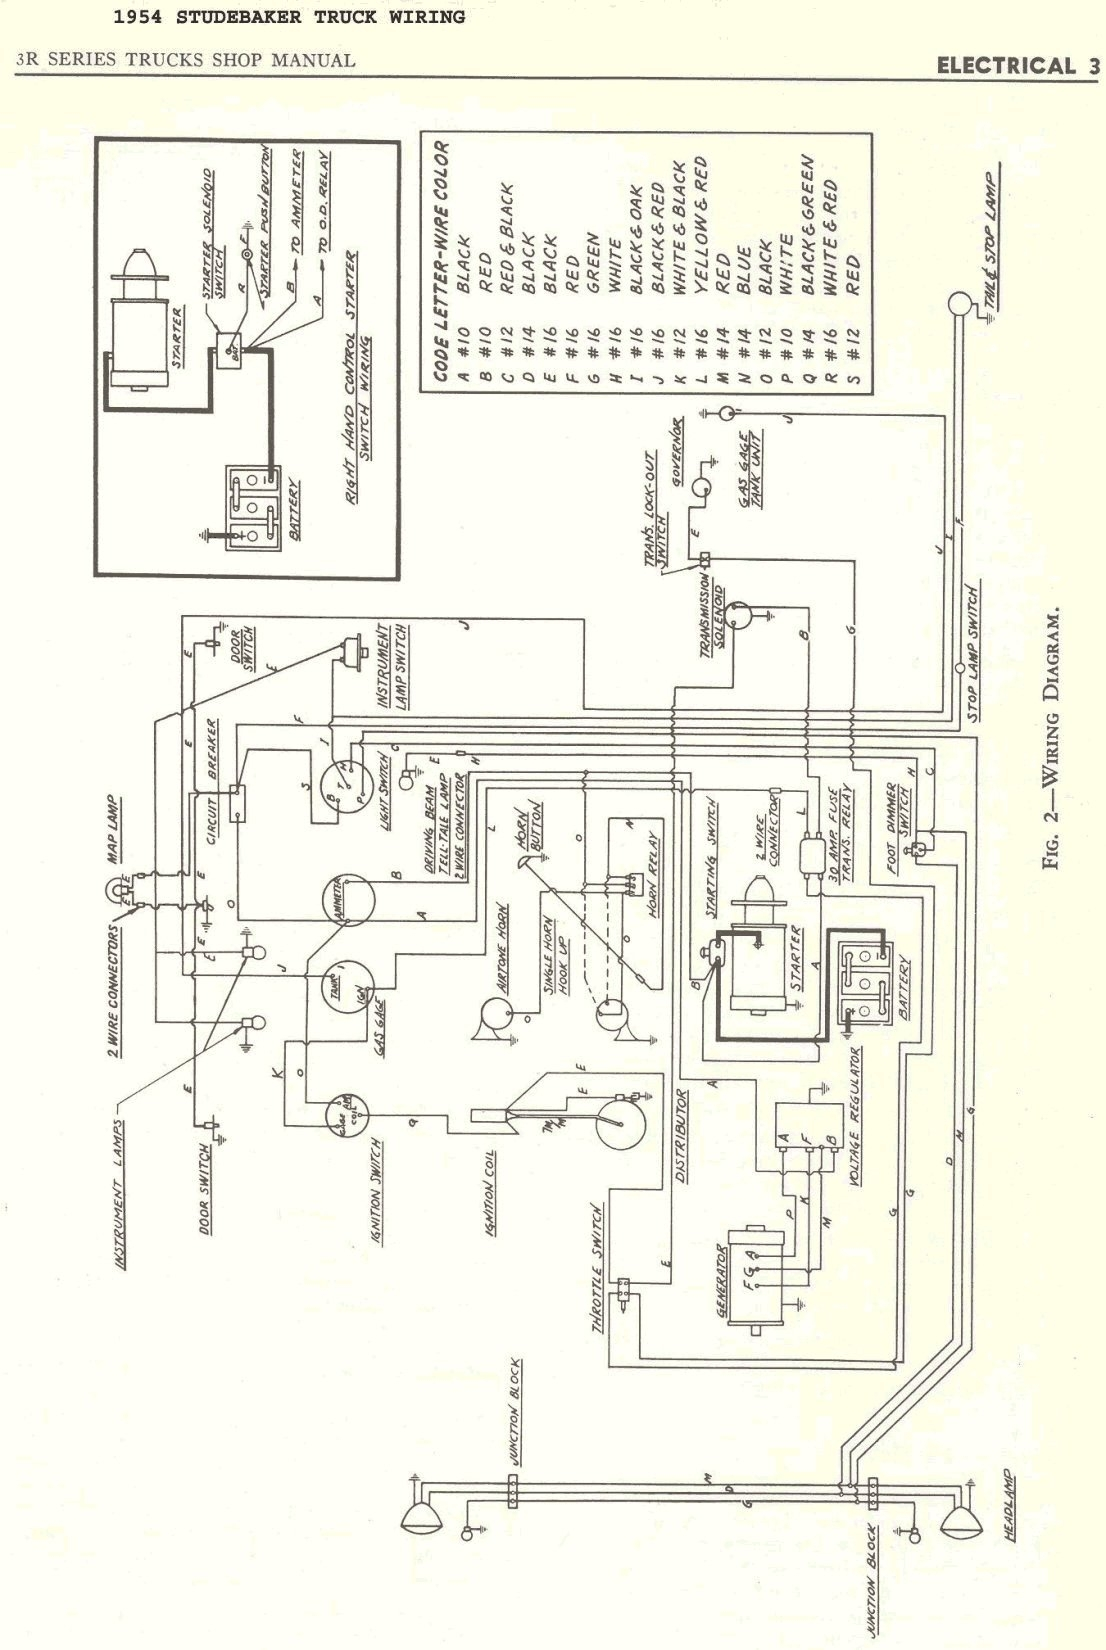 wiring connection diagram dual battery system 6 volt positive ground fuse box and